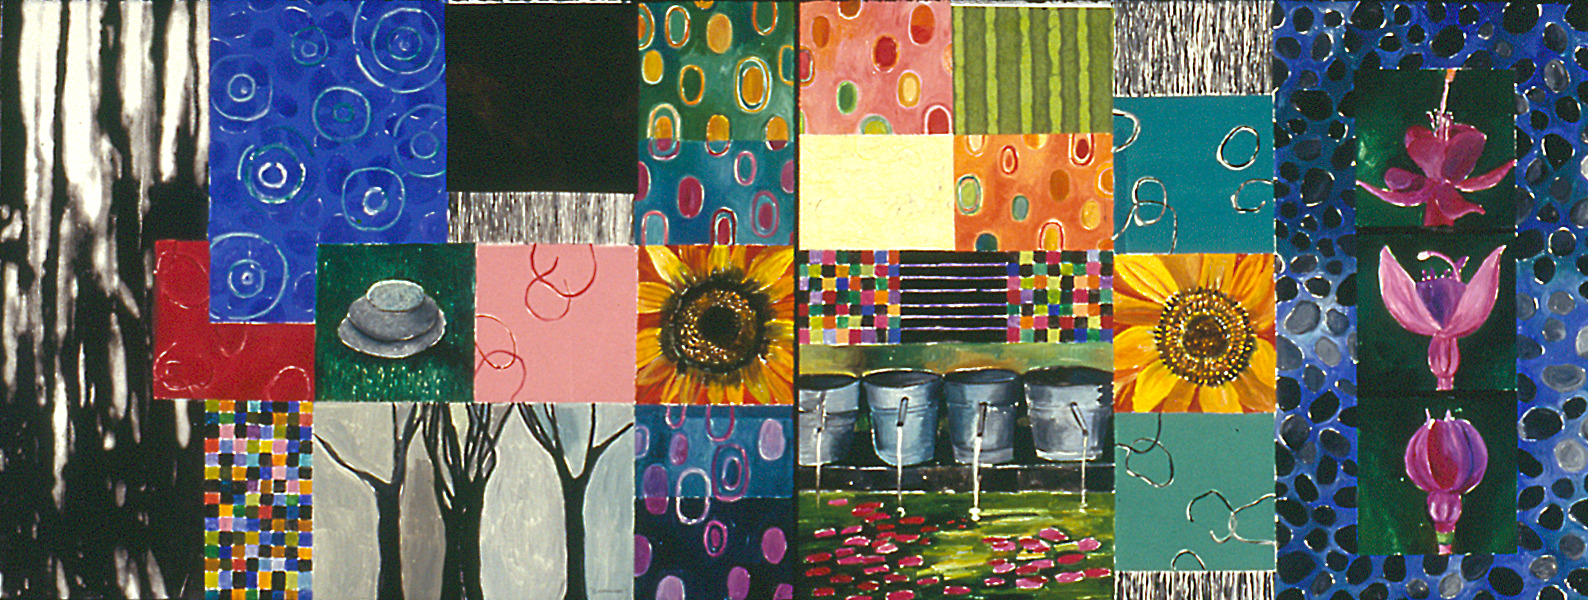 Large Diptych Monotypes Sunflowers